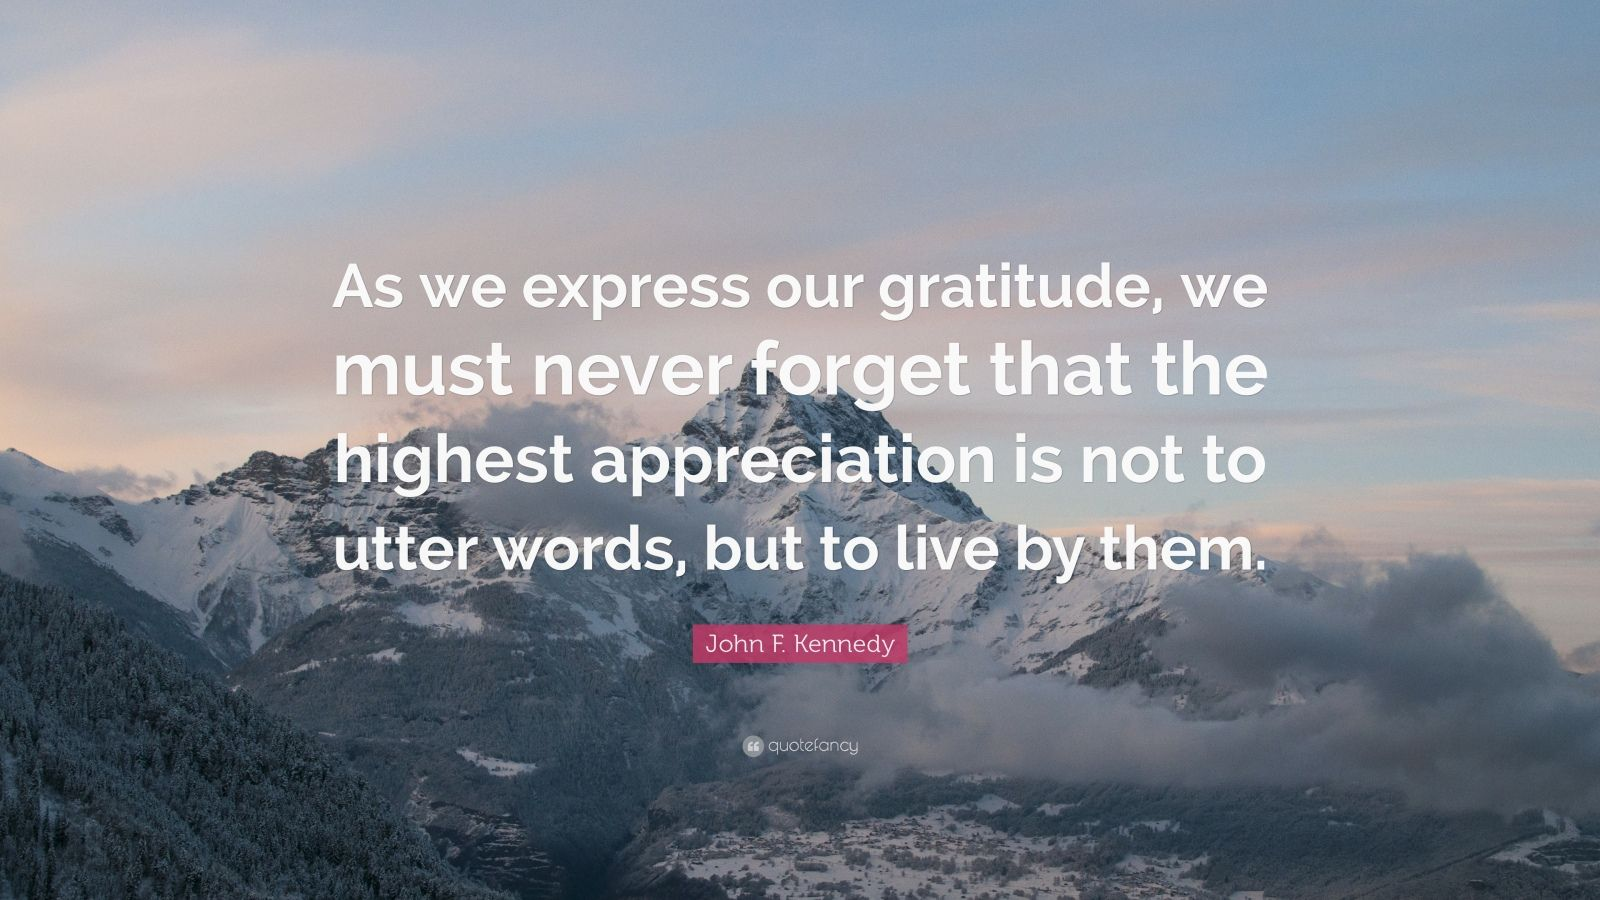 Gandhi Wallpapers With Quotes John F Kennedy Quote As We Express Our Gratitude We